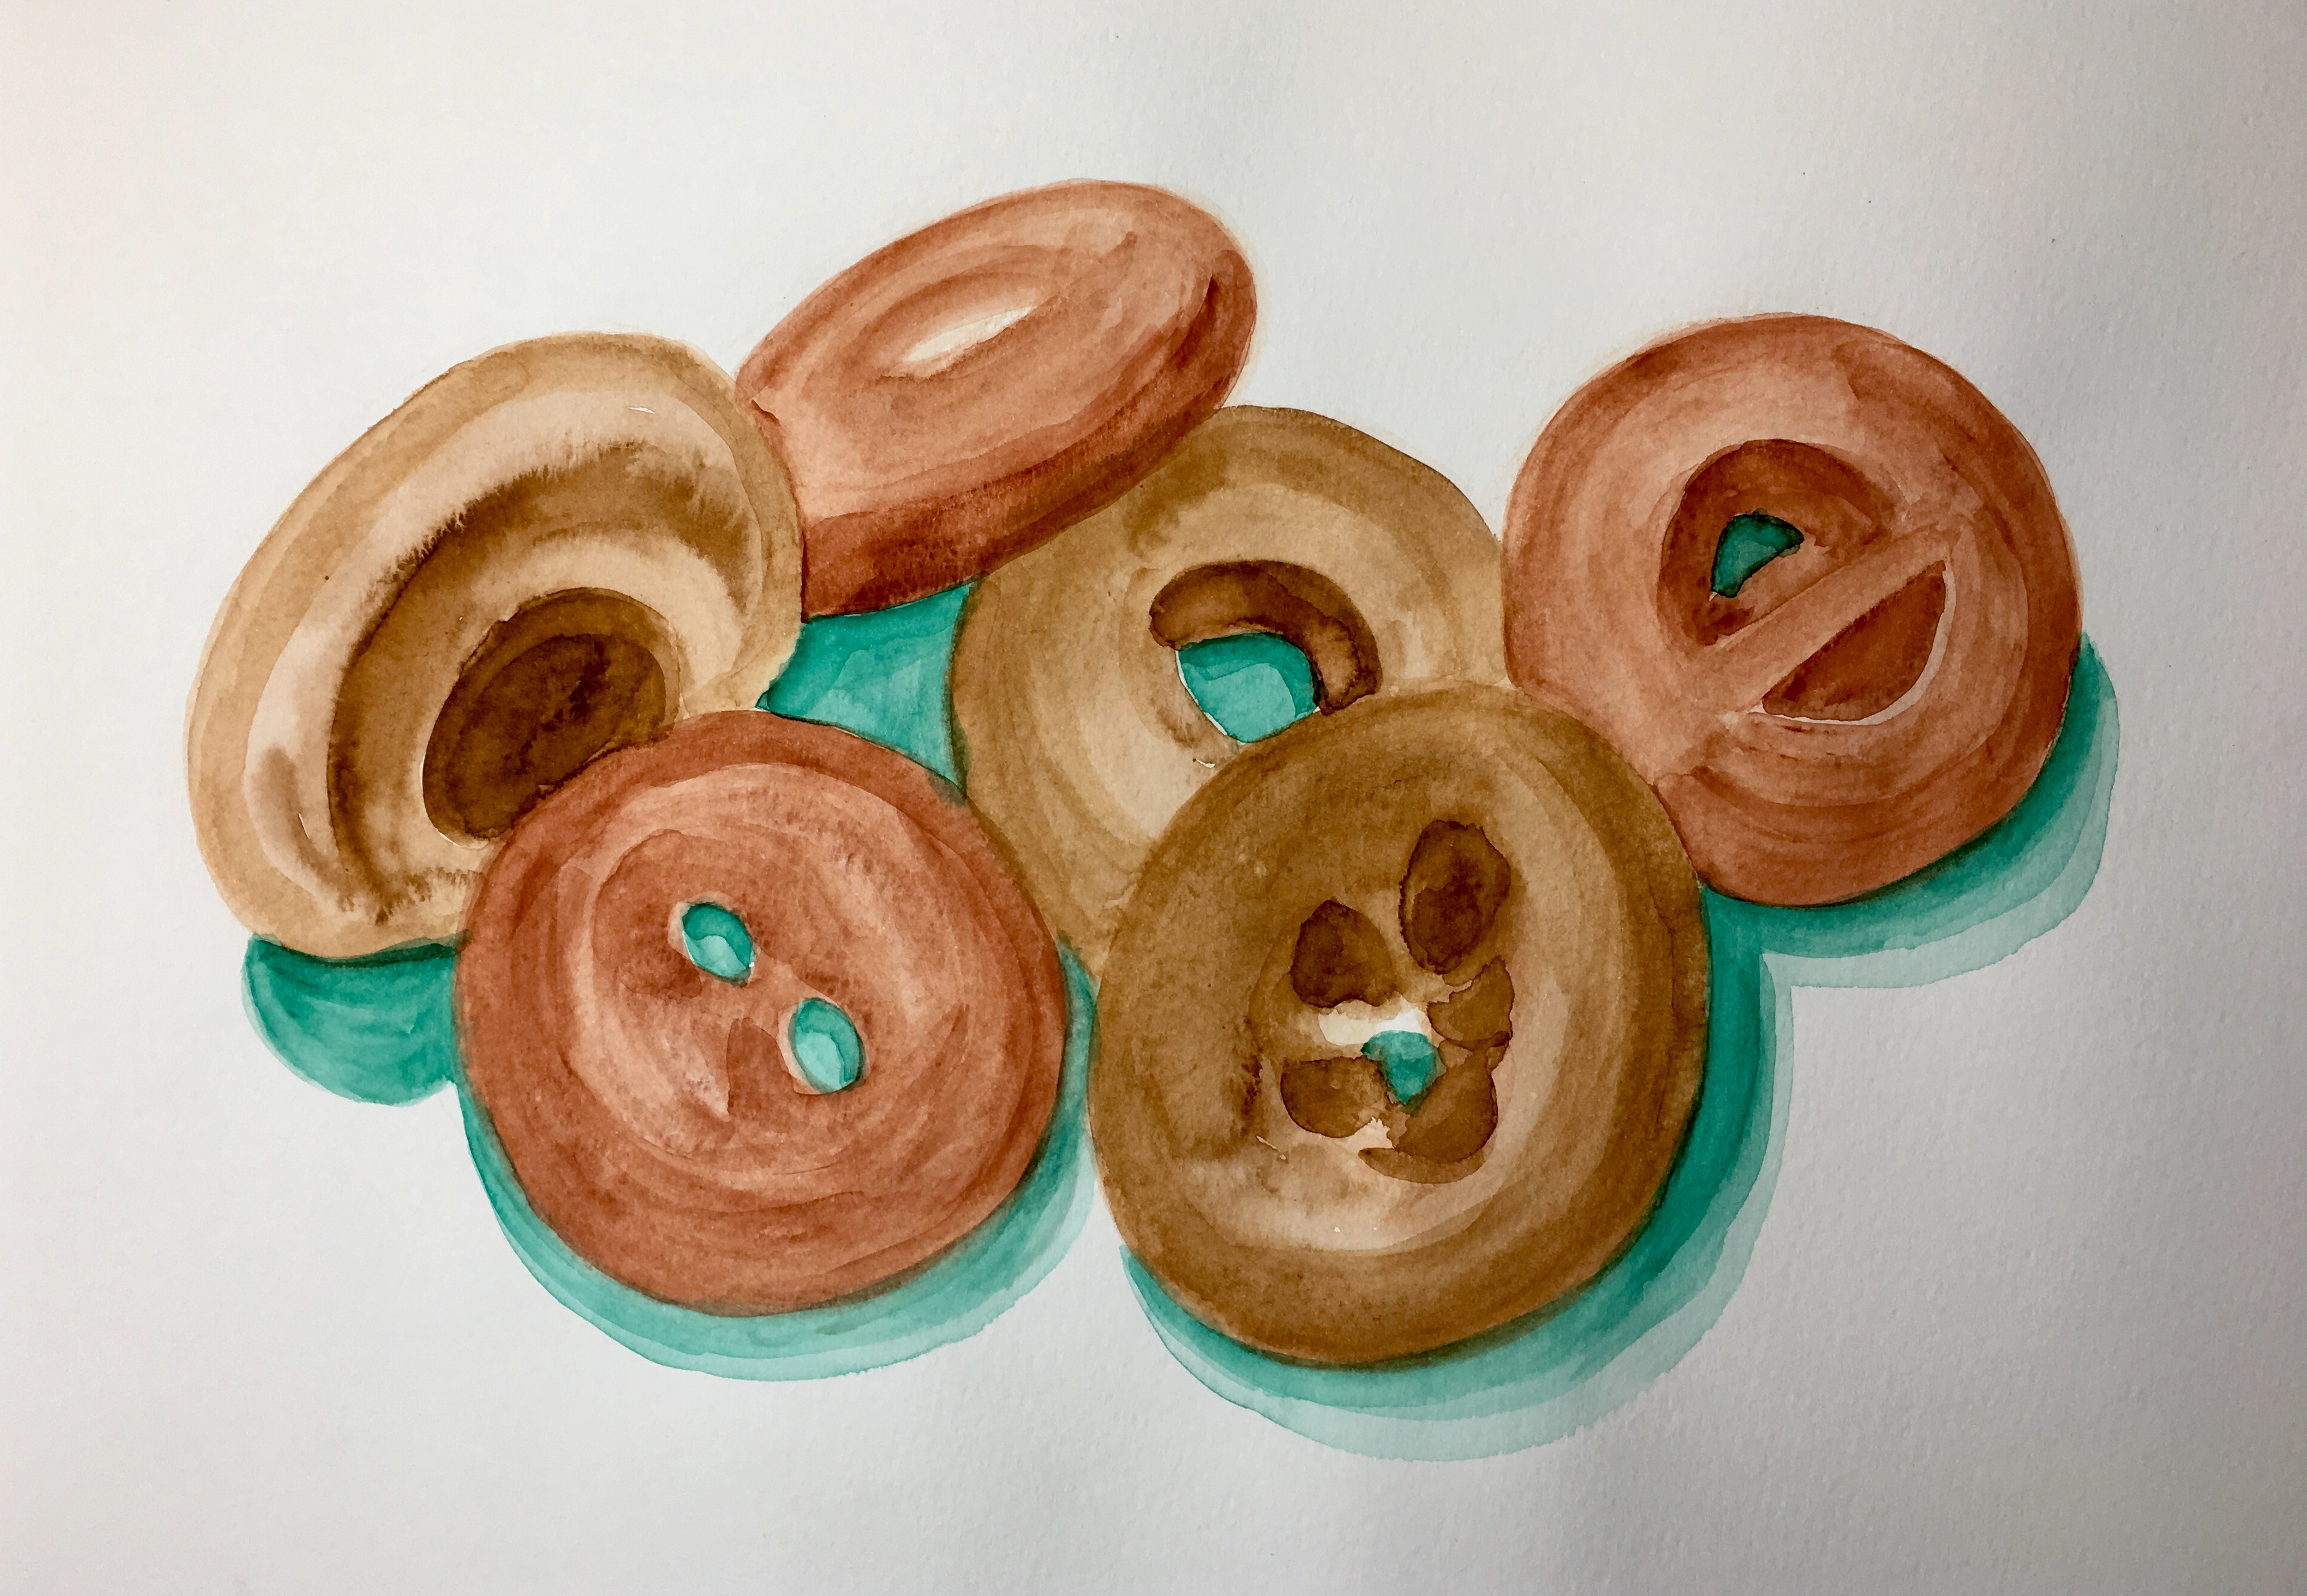 Six cake donuts by Maple donuts since 1946